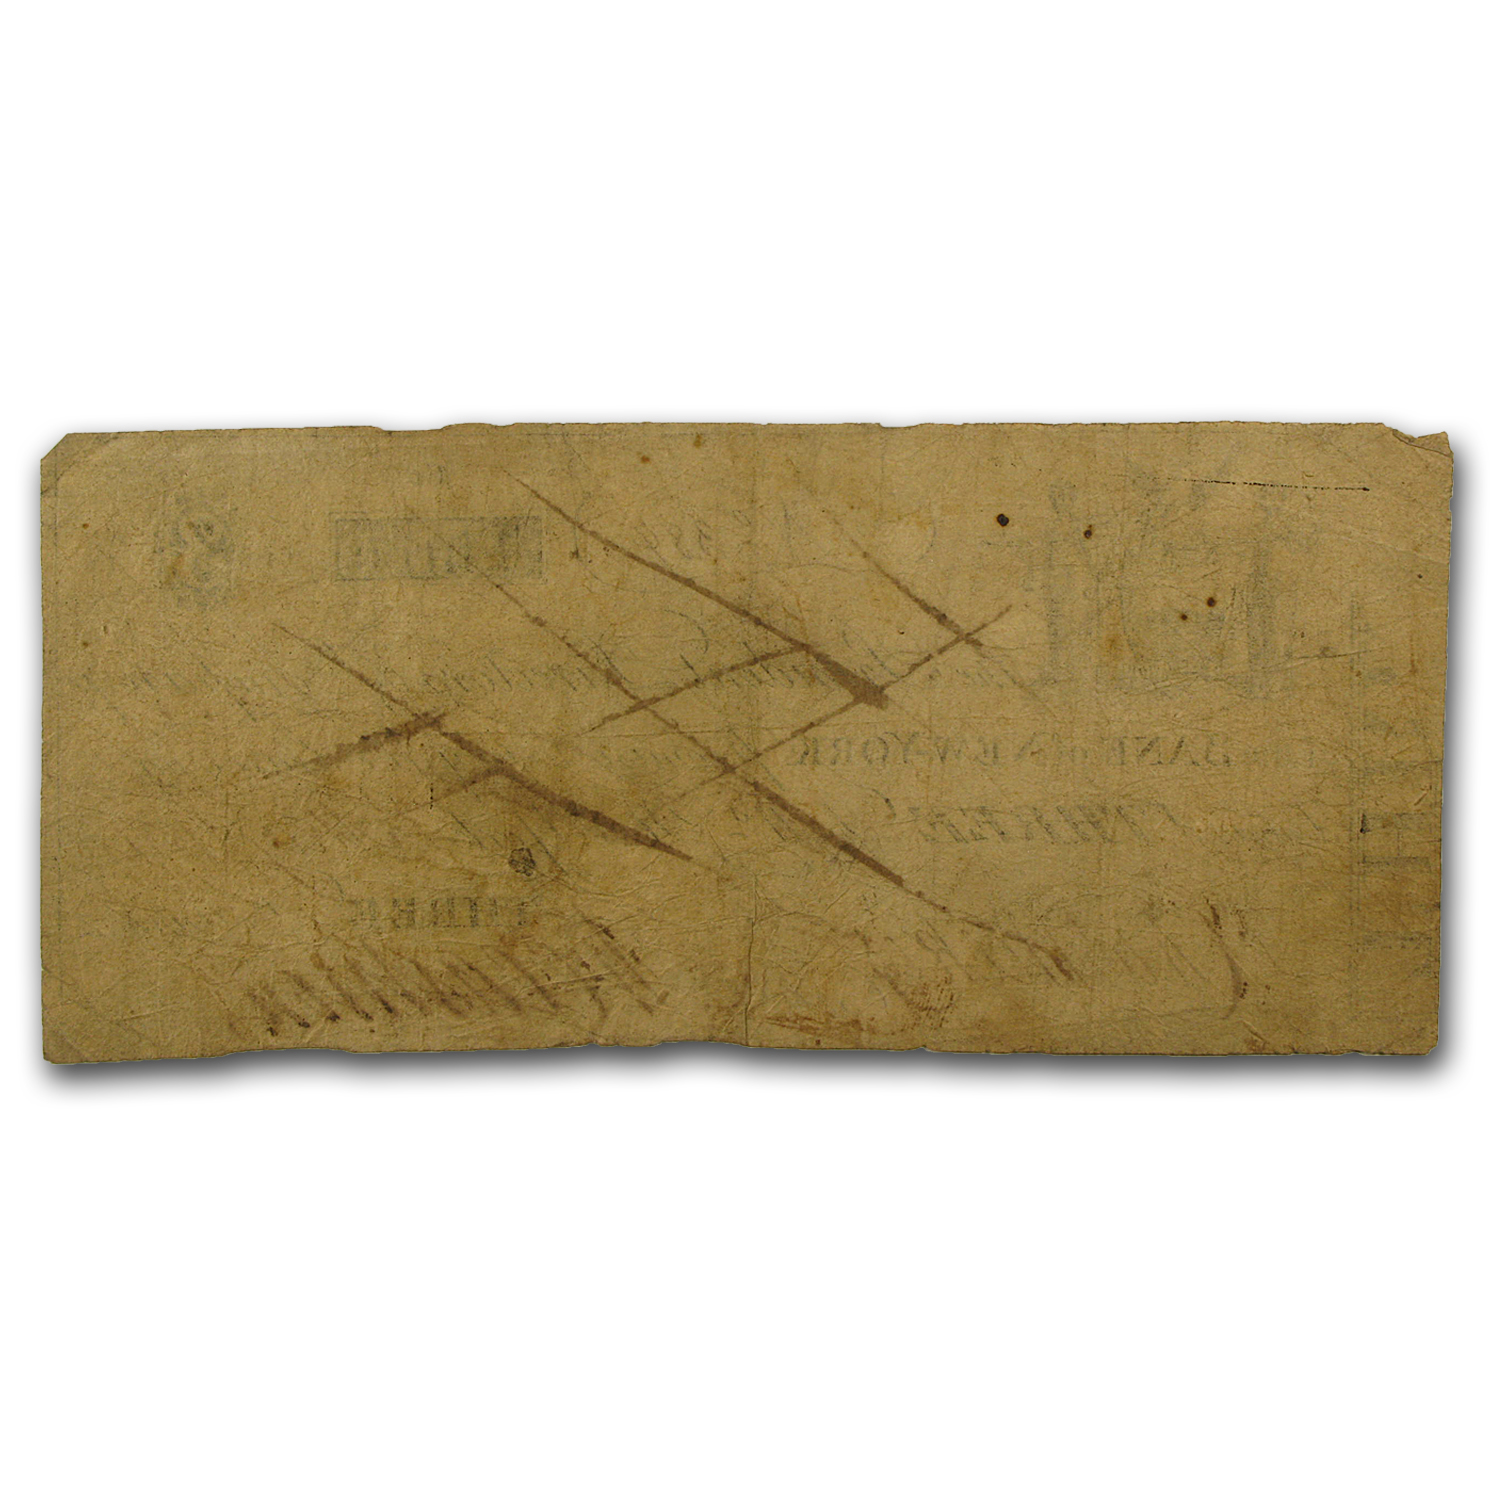 1817 Bank of New York, NY $3 VG (Cancelled)